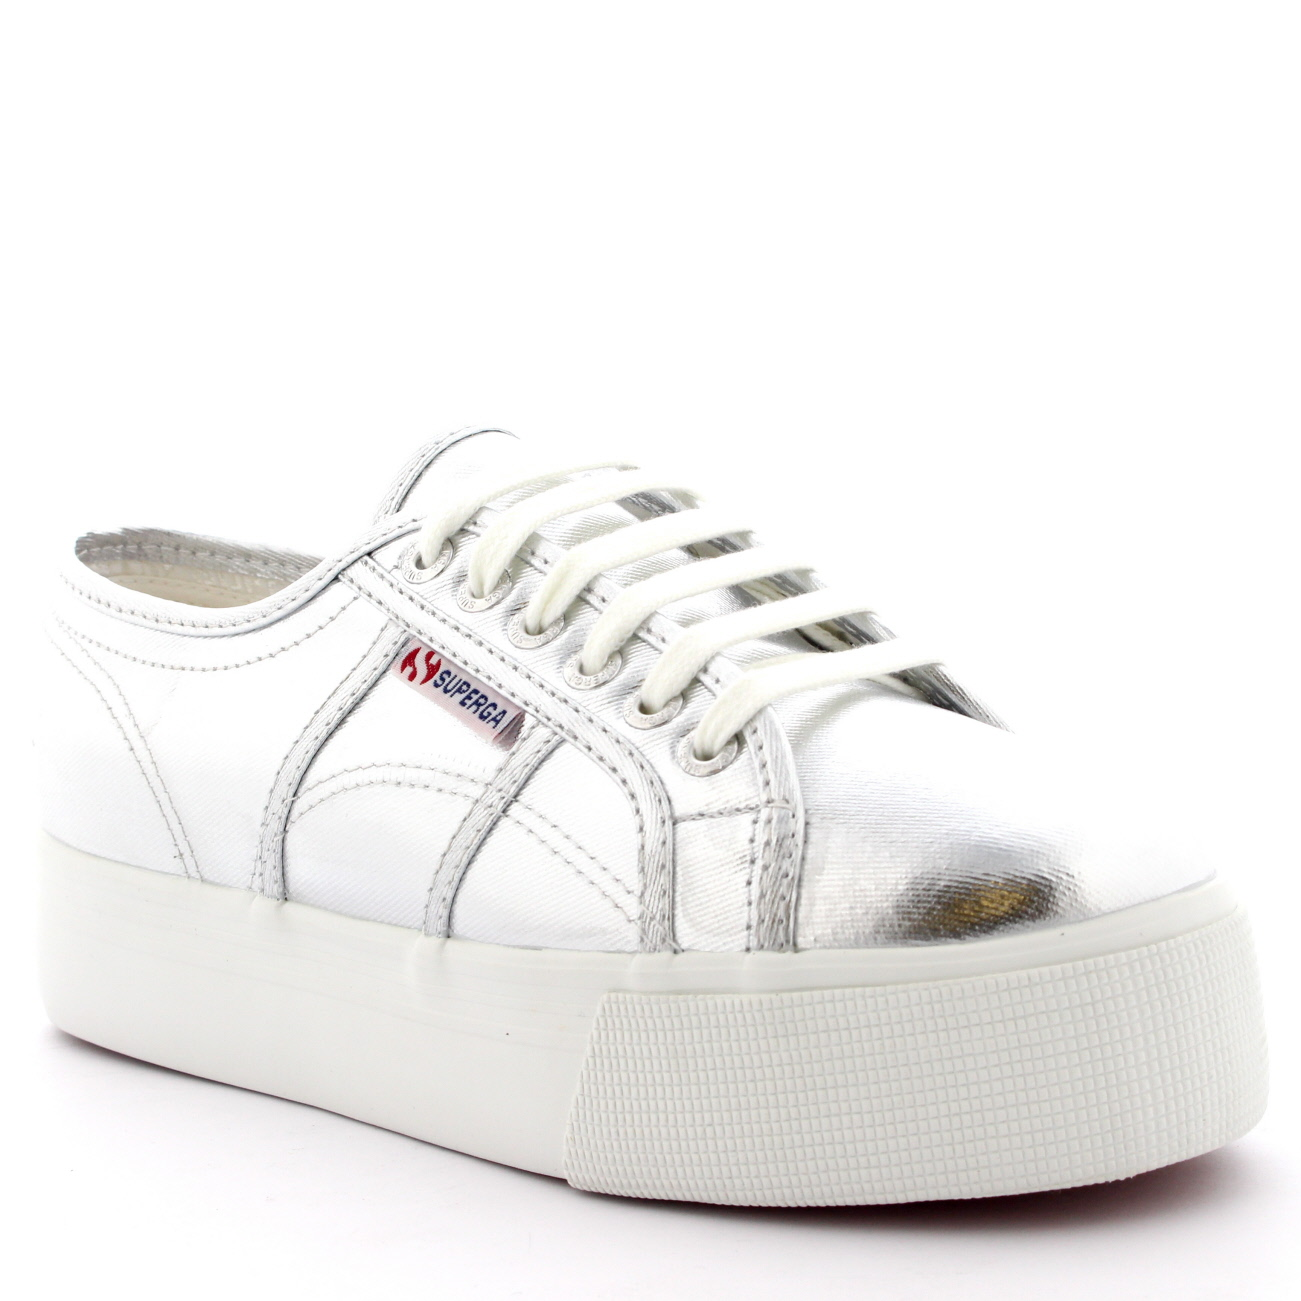 Ladies Superga 2790 Cotmetu Pumps Low Top Plimsolls Metallic Trainers All Sizes